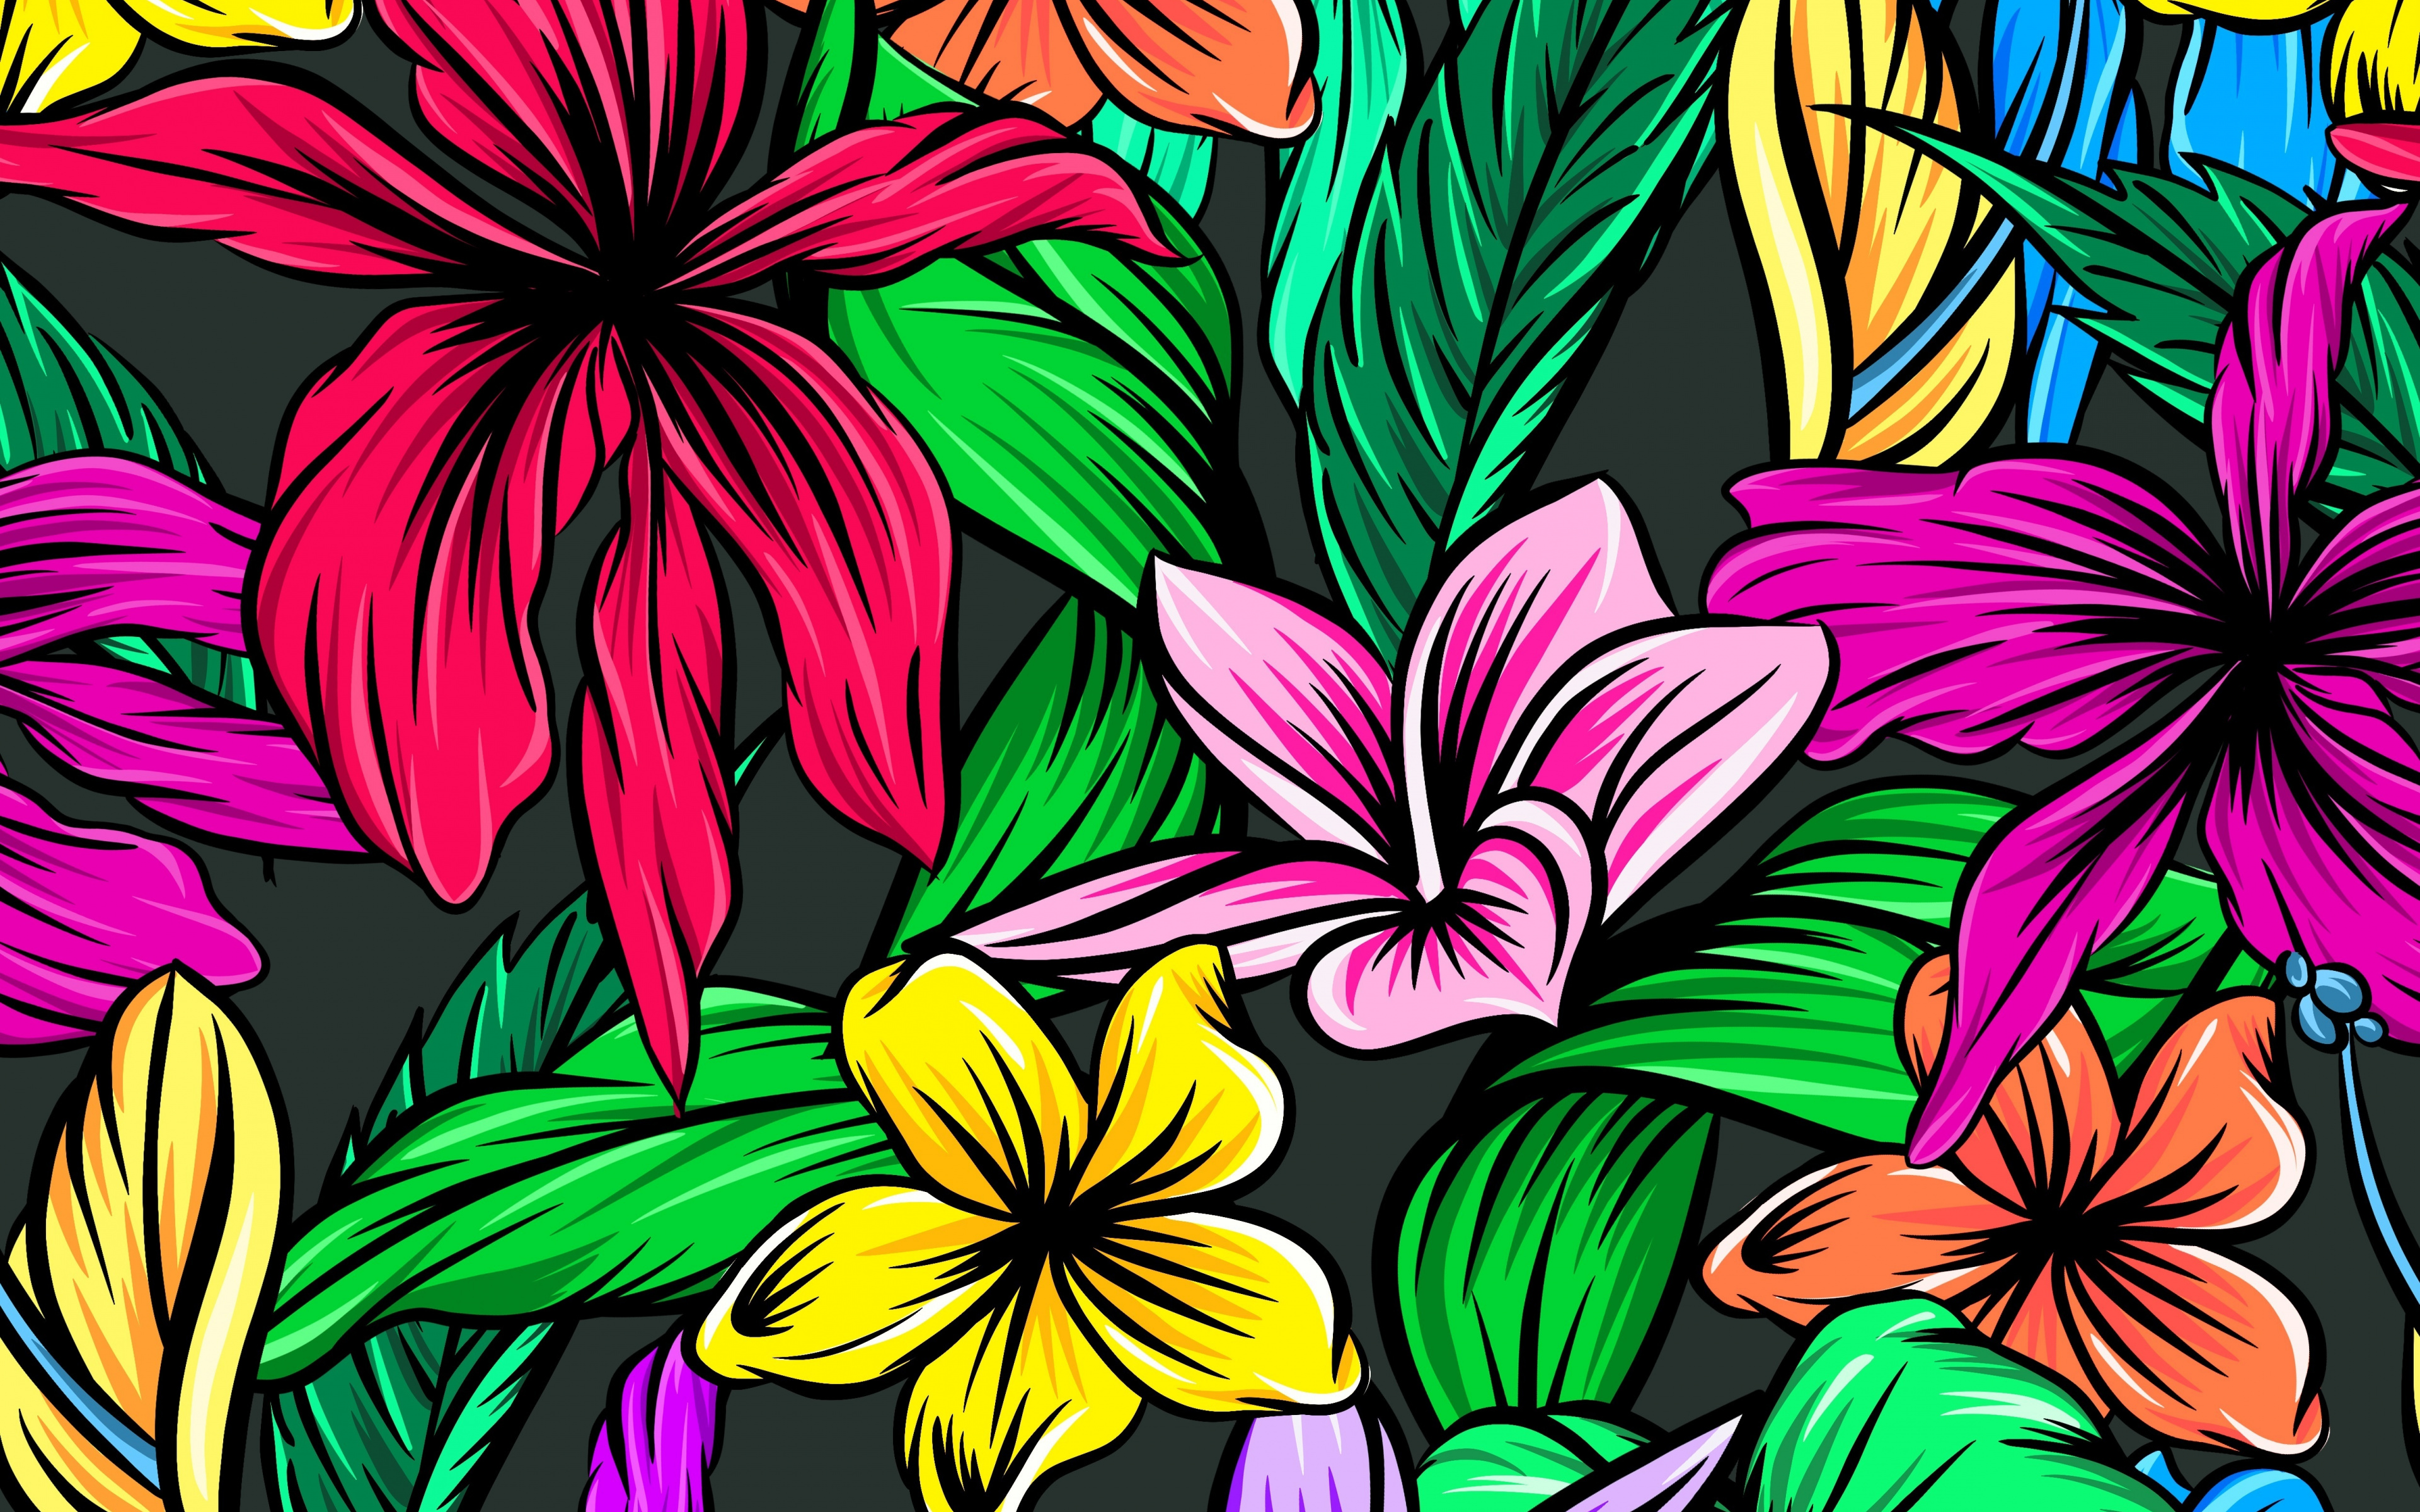 Abstract, Colorful, Flowers, Digital Art, Wallpaper - Colorful Flowers Digital Art - HD Wallpaper